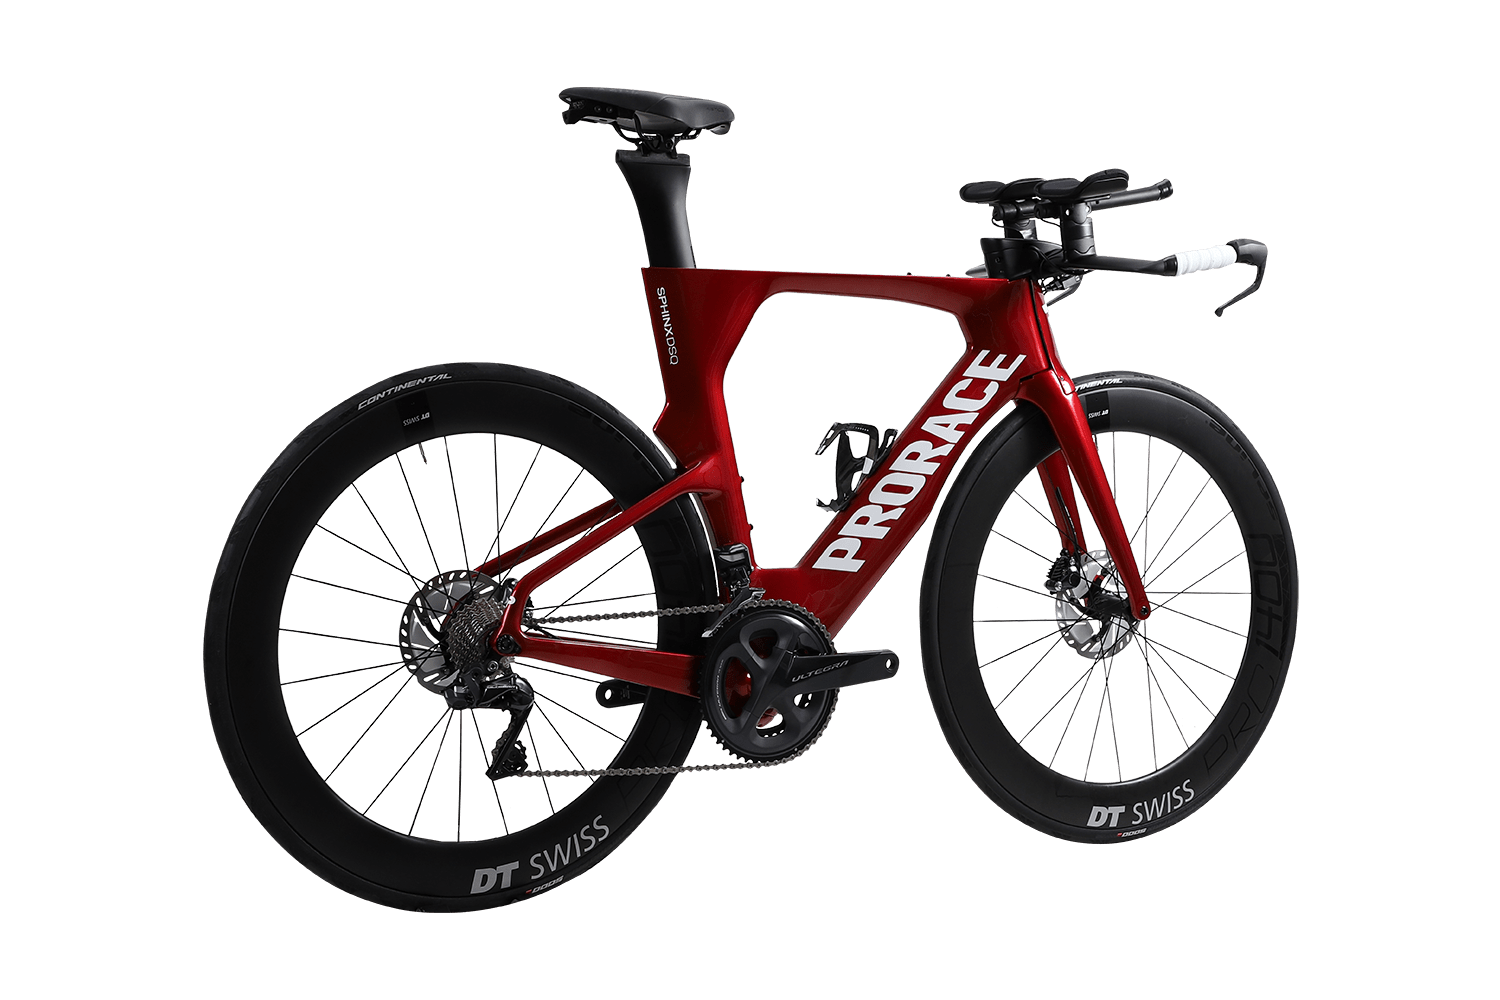 Spinx dsq time trial fiets prorace